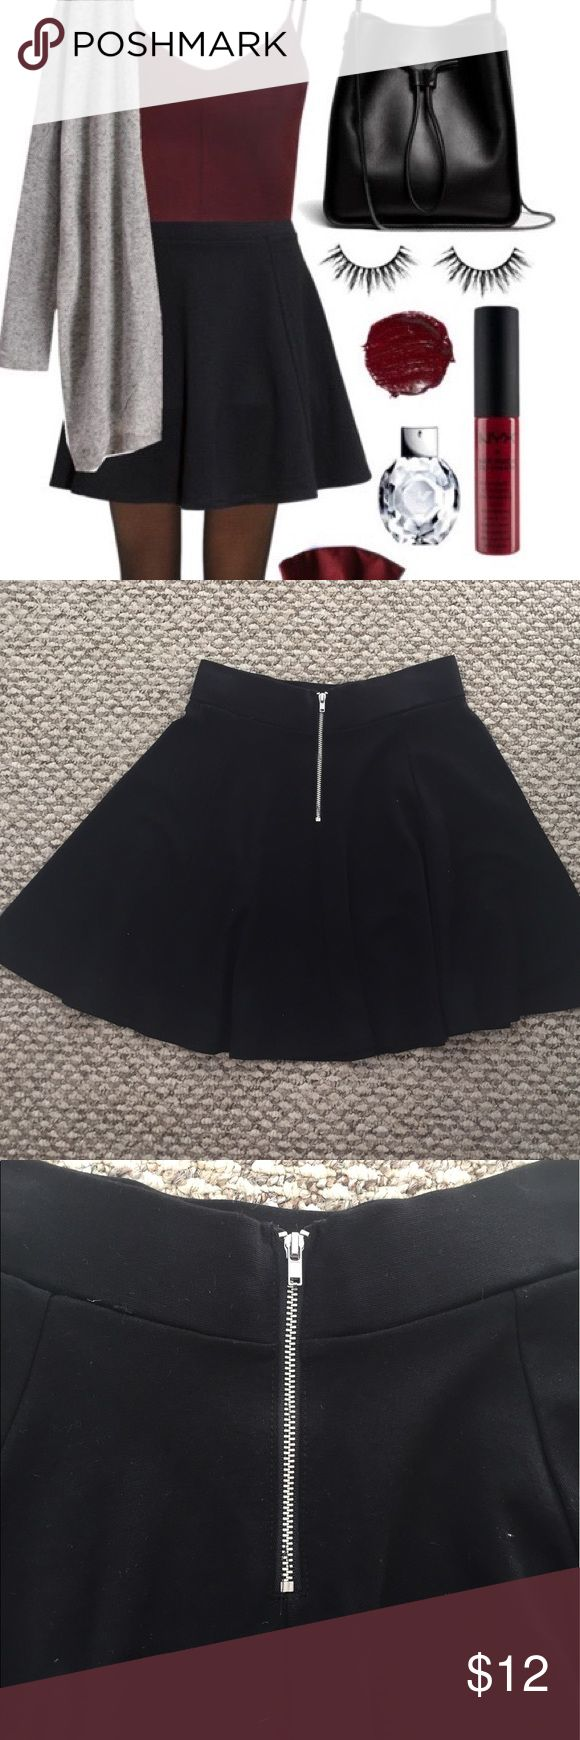 H&M Divided Black Circle Skirt with Zipper A perfect addition to every wardrobe! This basic black skirt looks great paired with crop tops, sweaters, and jean jackets H&M Skirts Circle & Skater